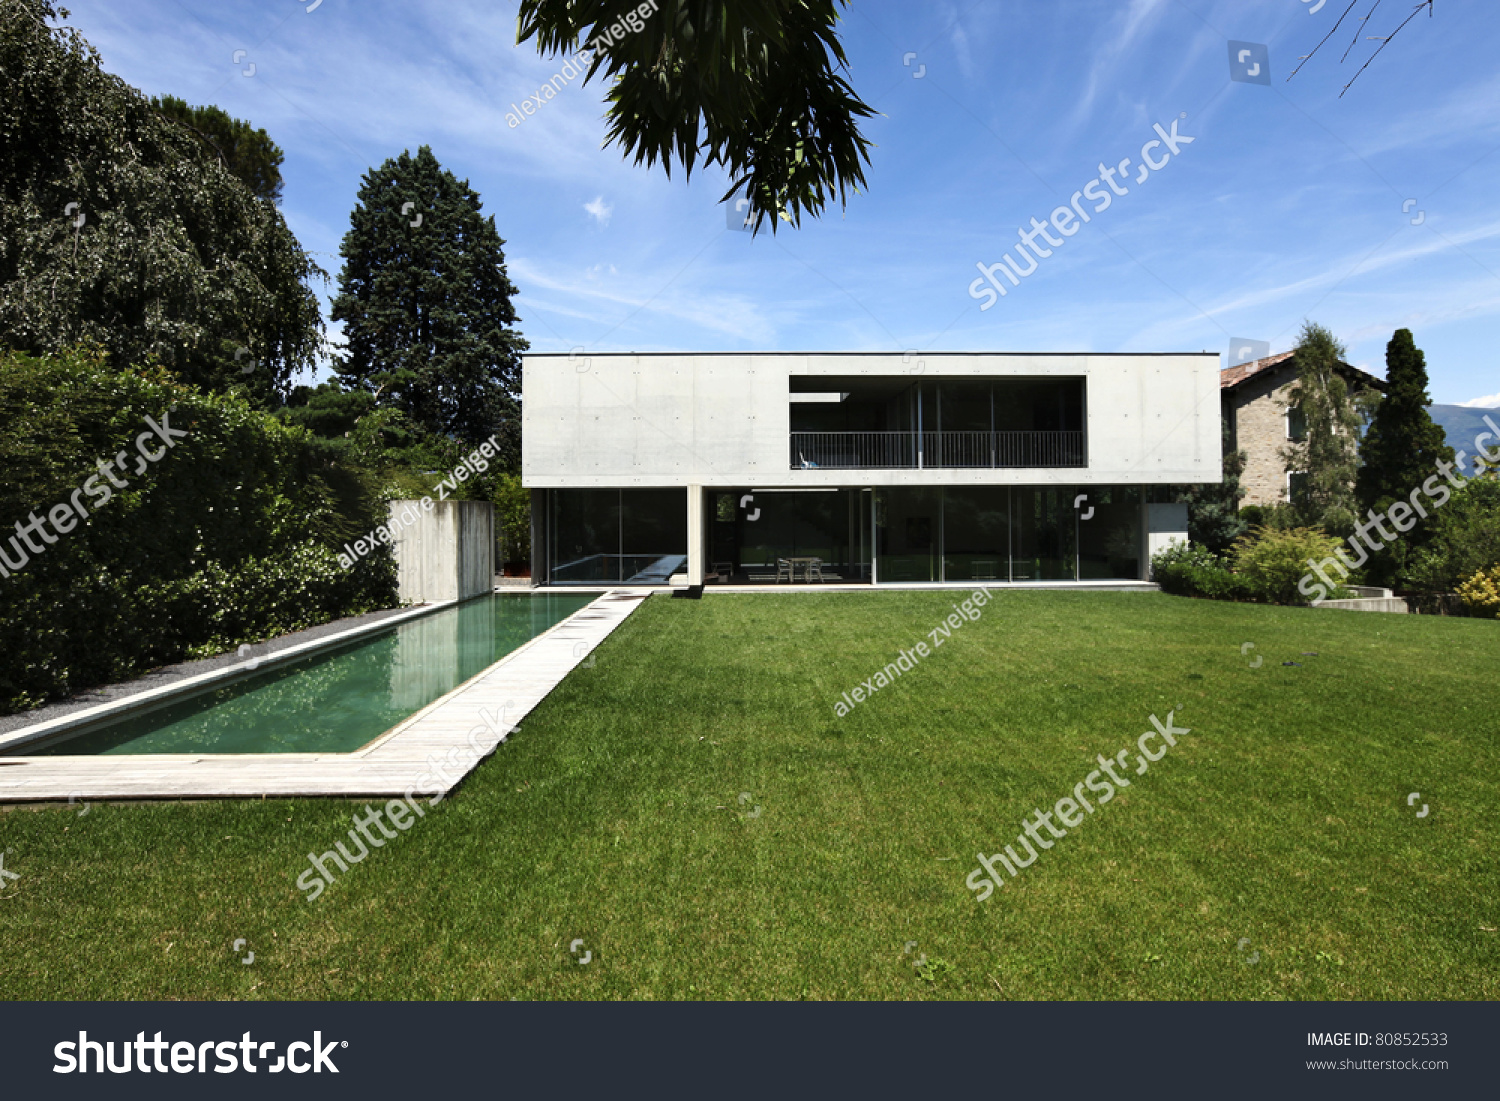 Beautiful Modern House Outdoors Pool Garden Stock Photo 80852533 ... - ^